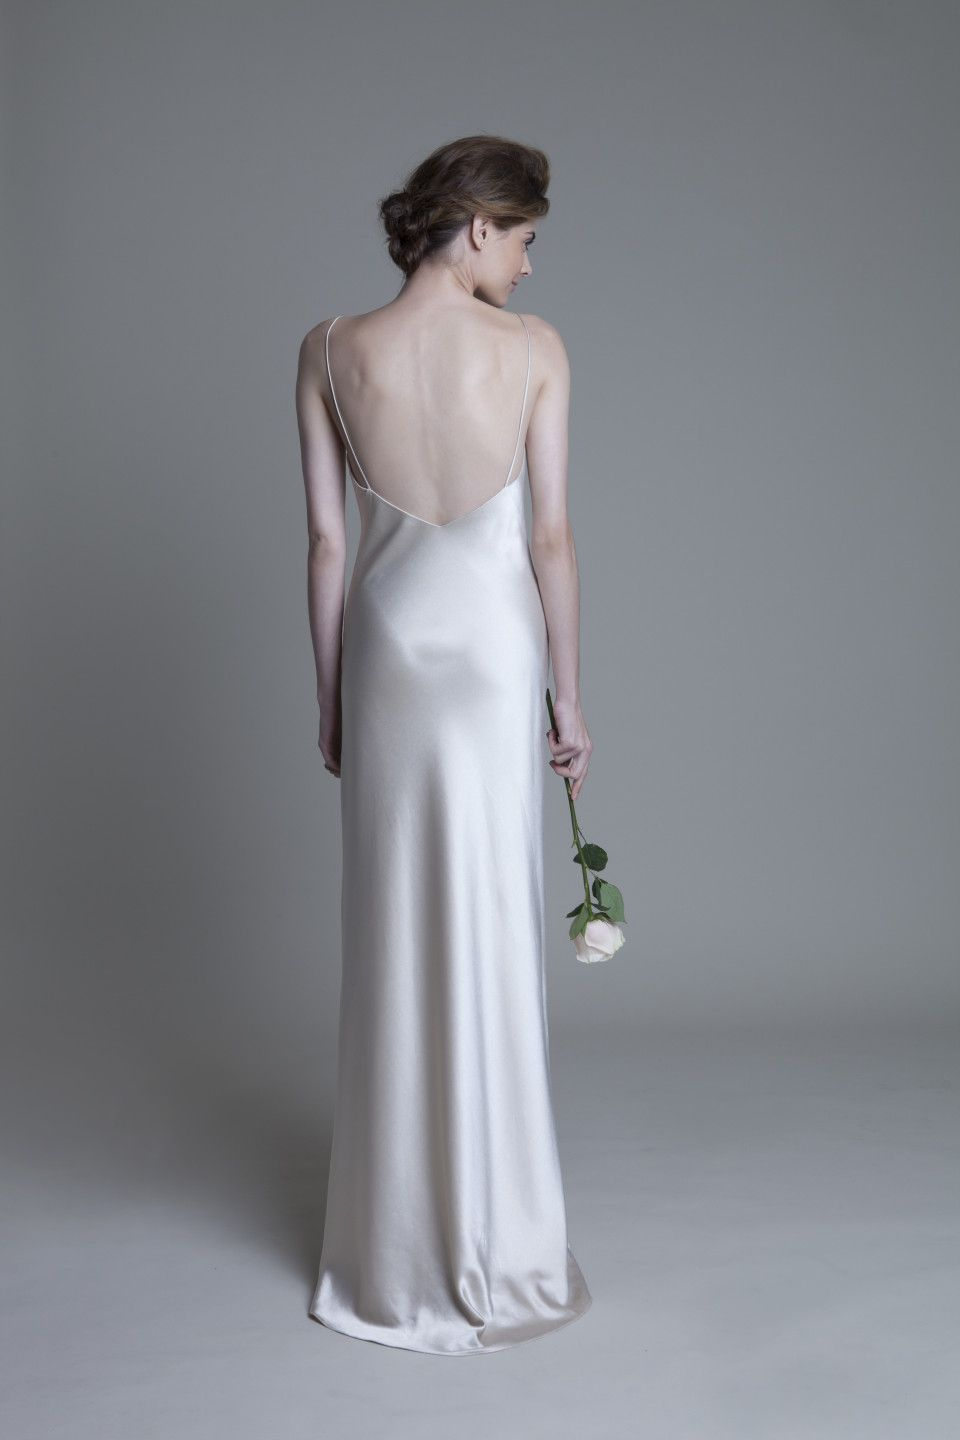 Backless wedding dress satin wedding gown with straps by british